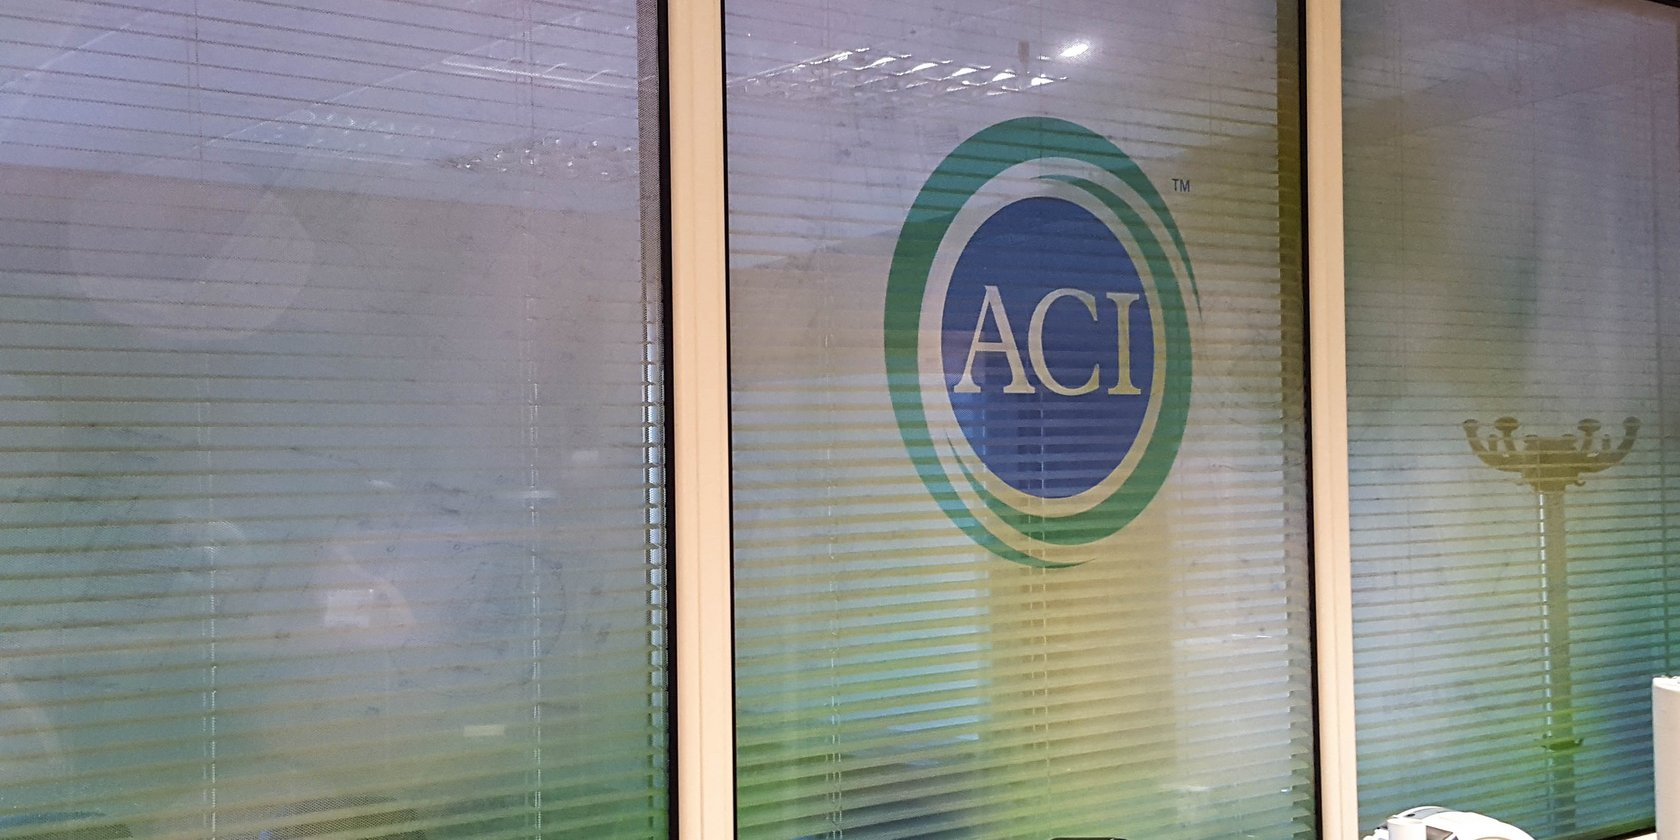 Window Graphics ACI